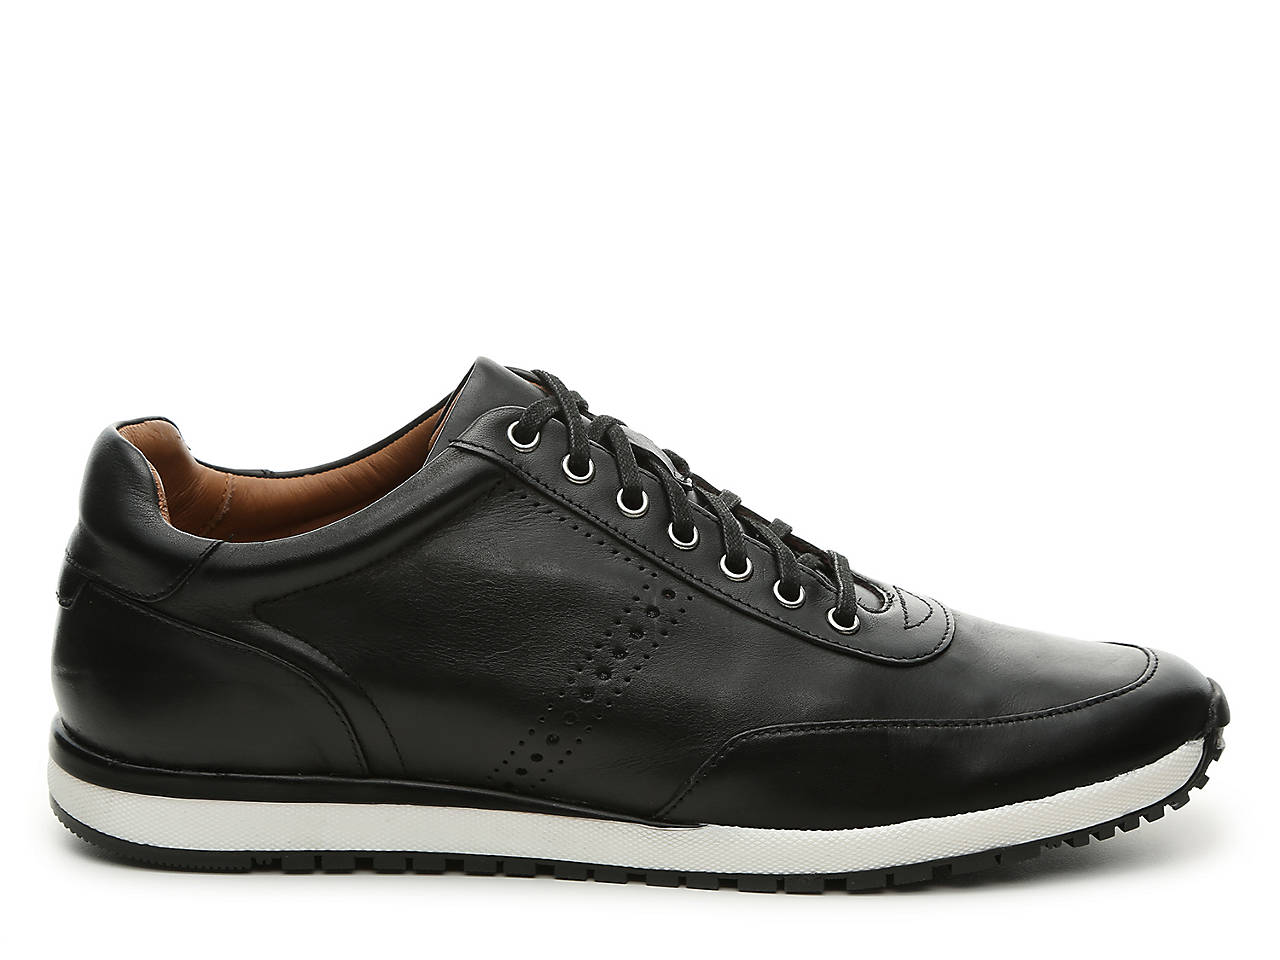 Bacco Bucci Century (Brown) Mens Shoes Sale Store Clearance Nicekicks Cheap Low Shipping Outlet Pay With Paypal eUtLYqZ5gK